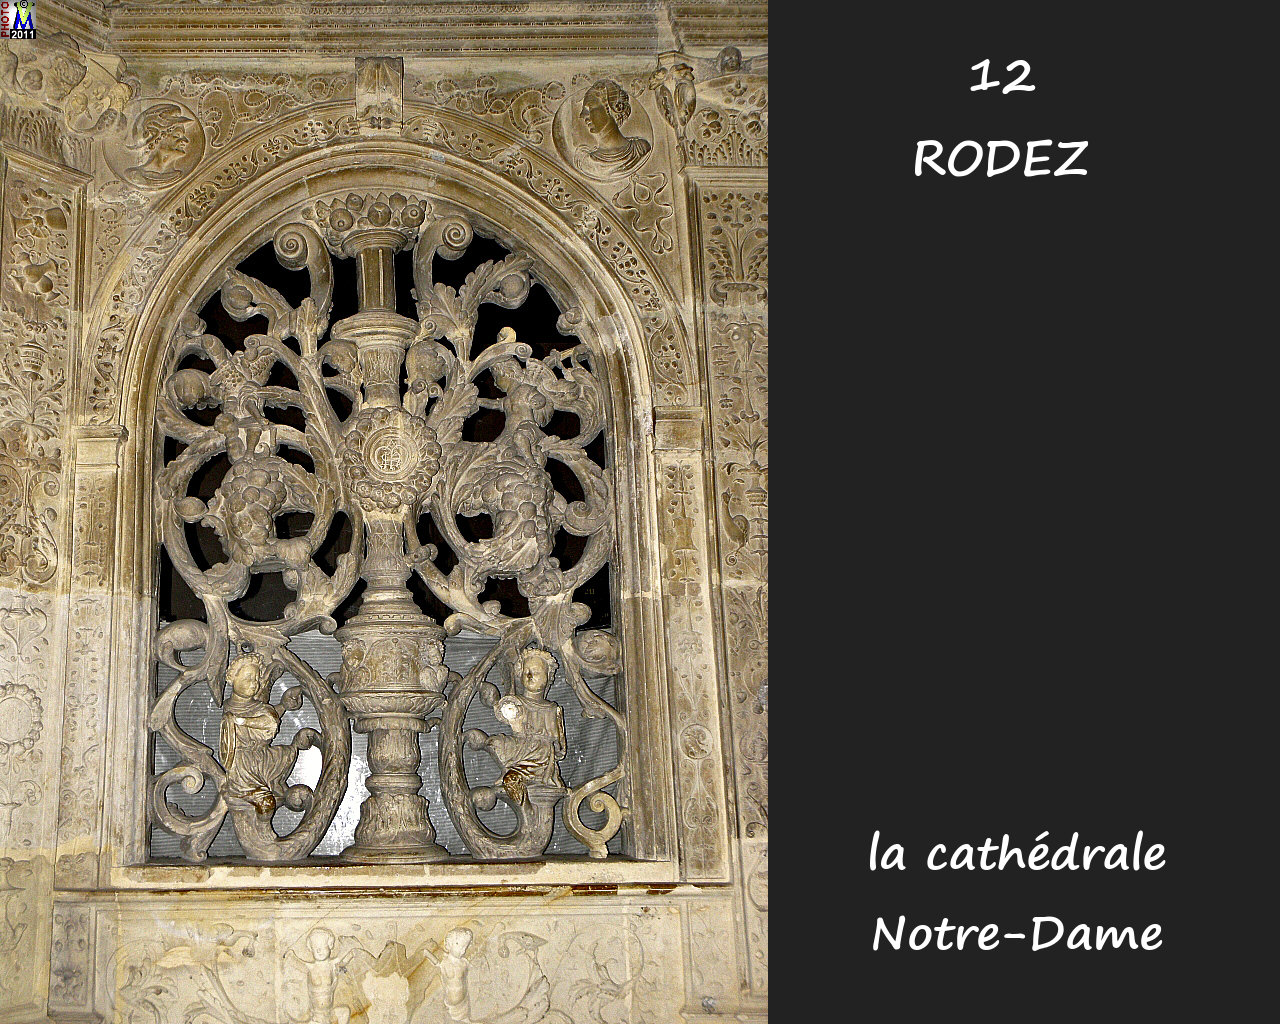 12RODEZ_cathedrale_234.jpg